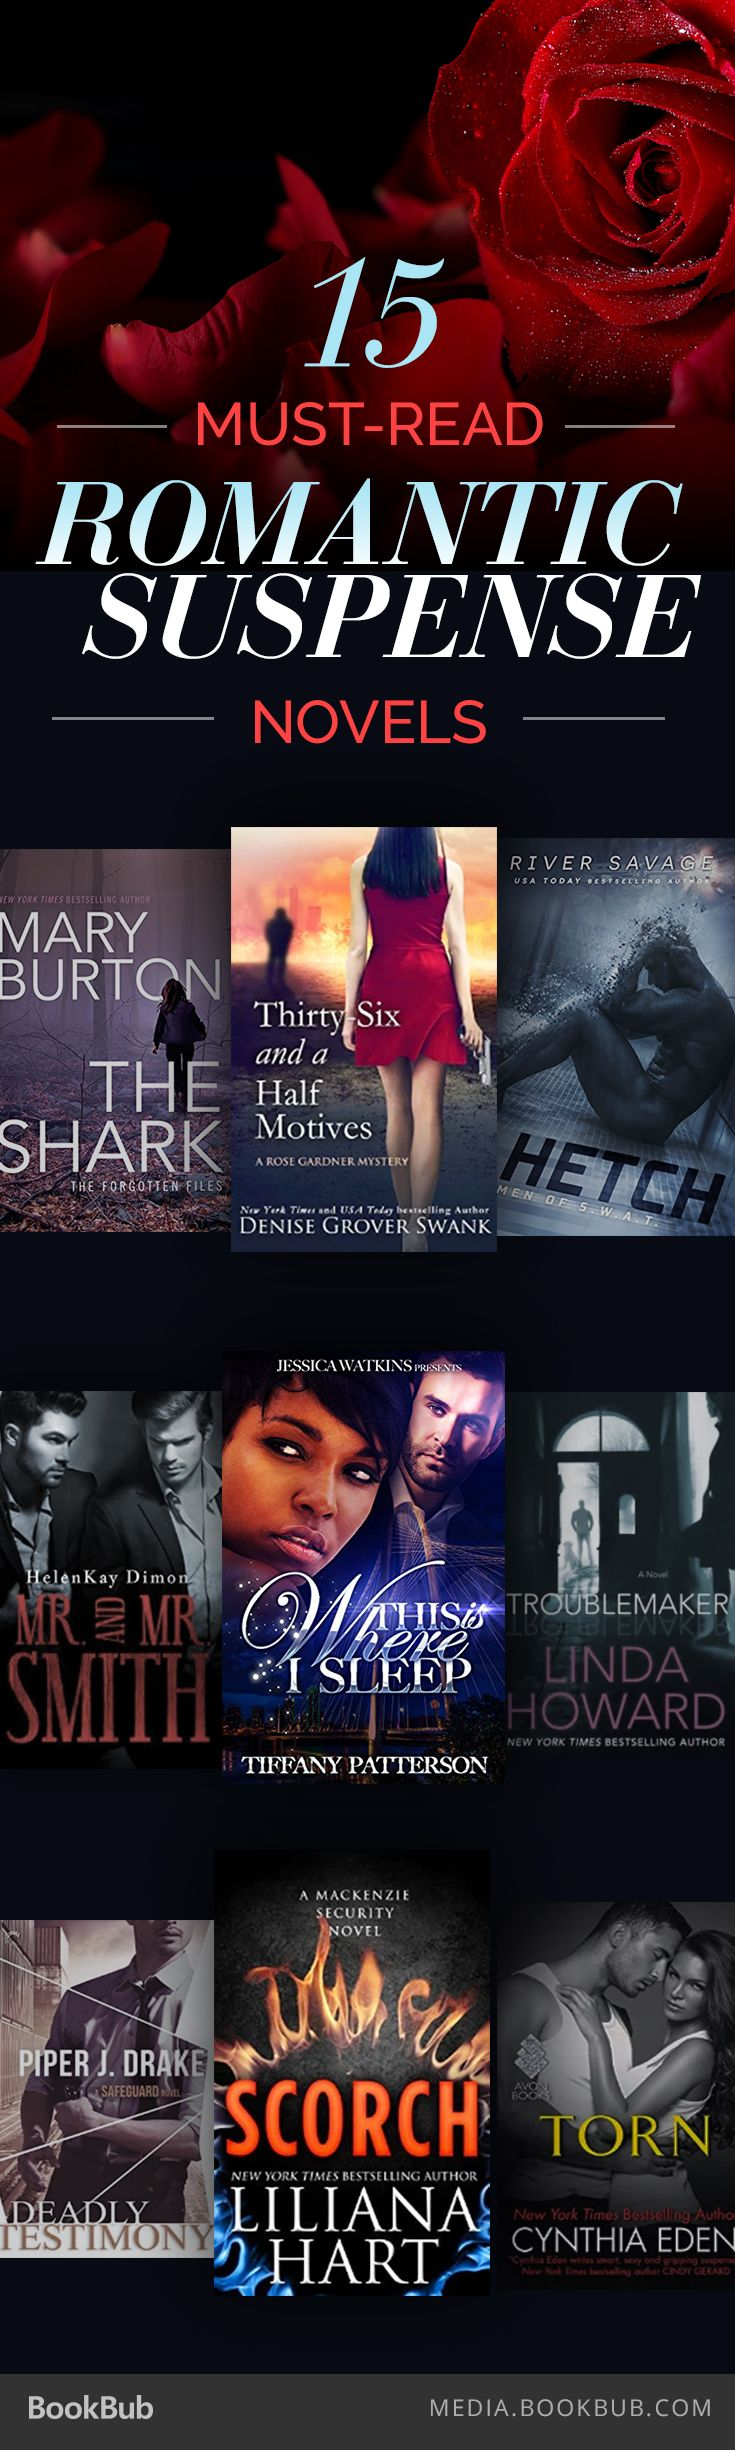 15 Romantic Suspense Novelsing Out This Summer